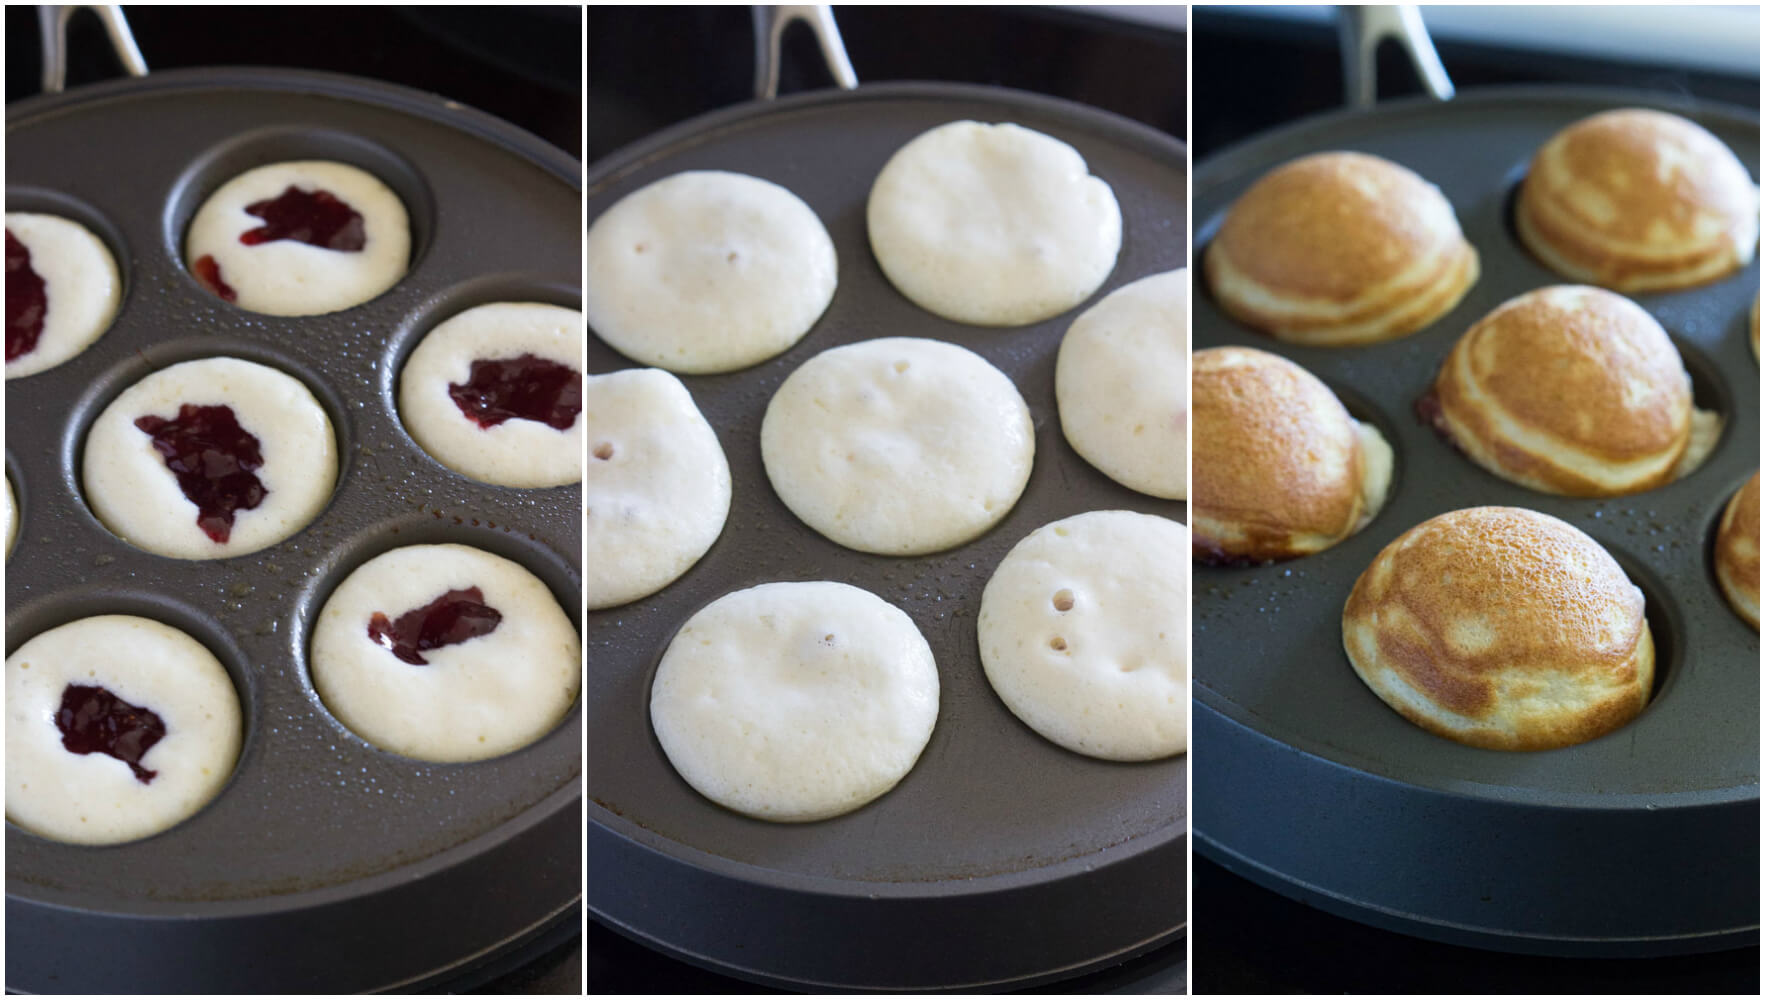 Mini pancakes (ebelskiver) filled with strawberry preserves make the ...